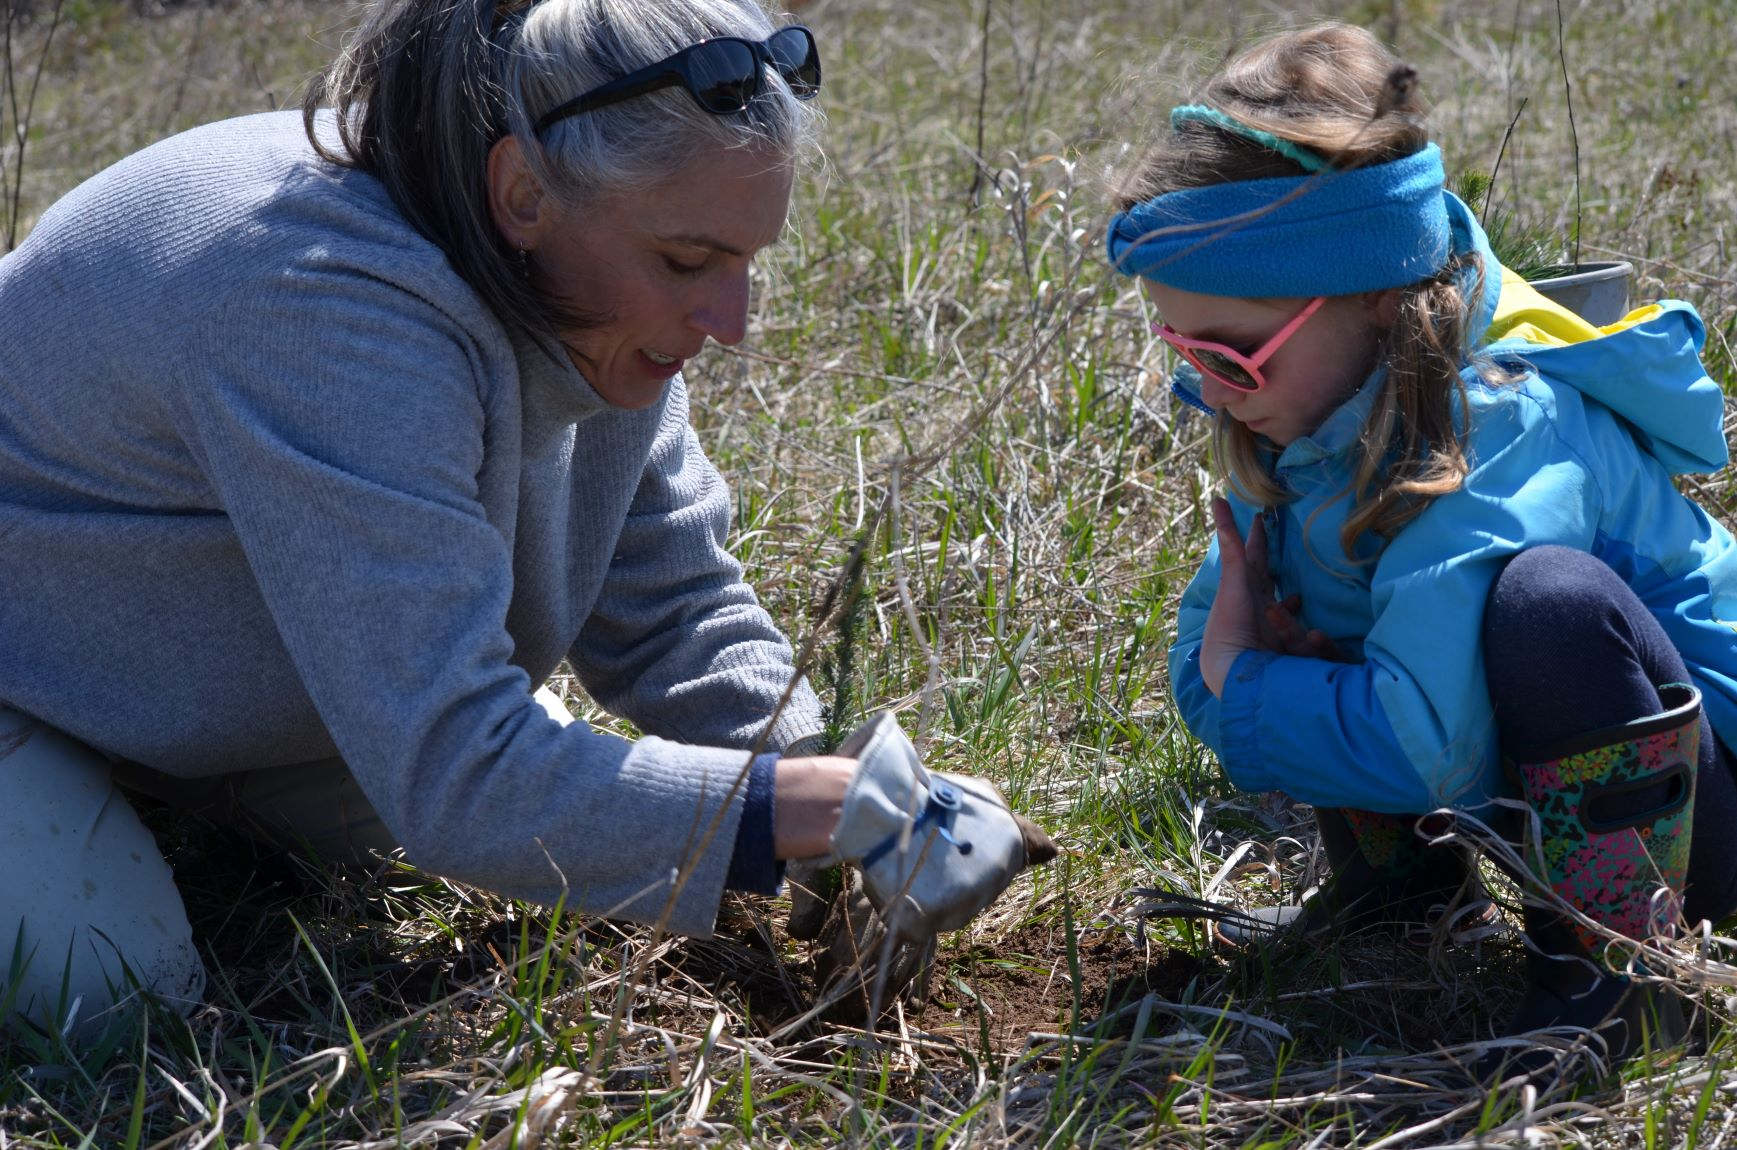 Christina Studebaker volunteers to plant trees at the Spring Public Tree Planting in Ellison Bay, WI on April 26, 2019.